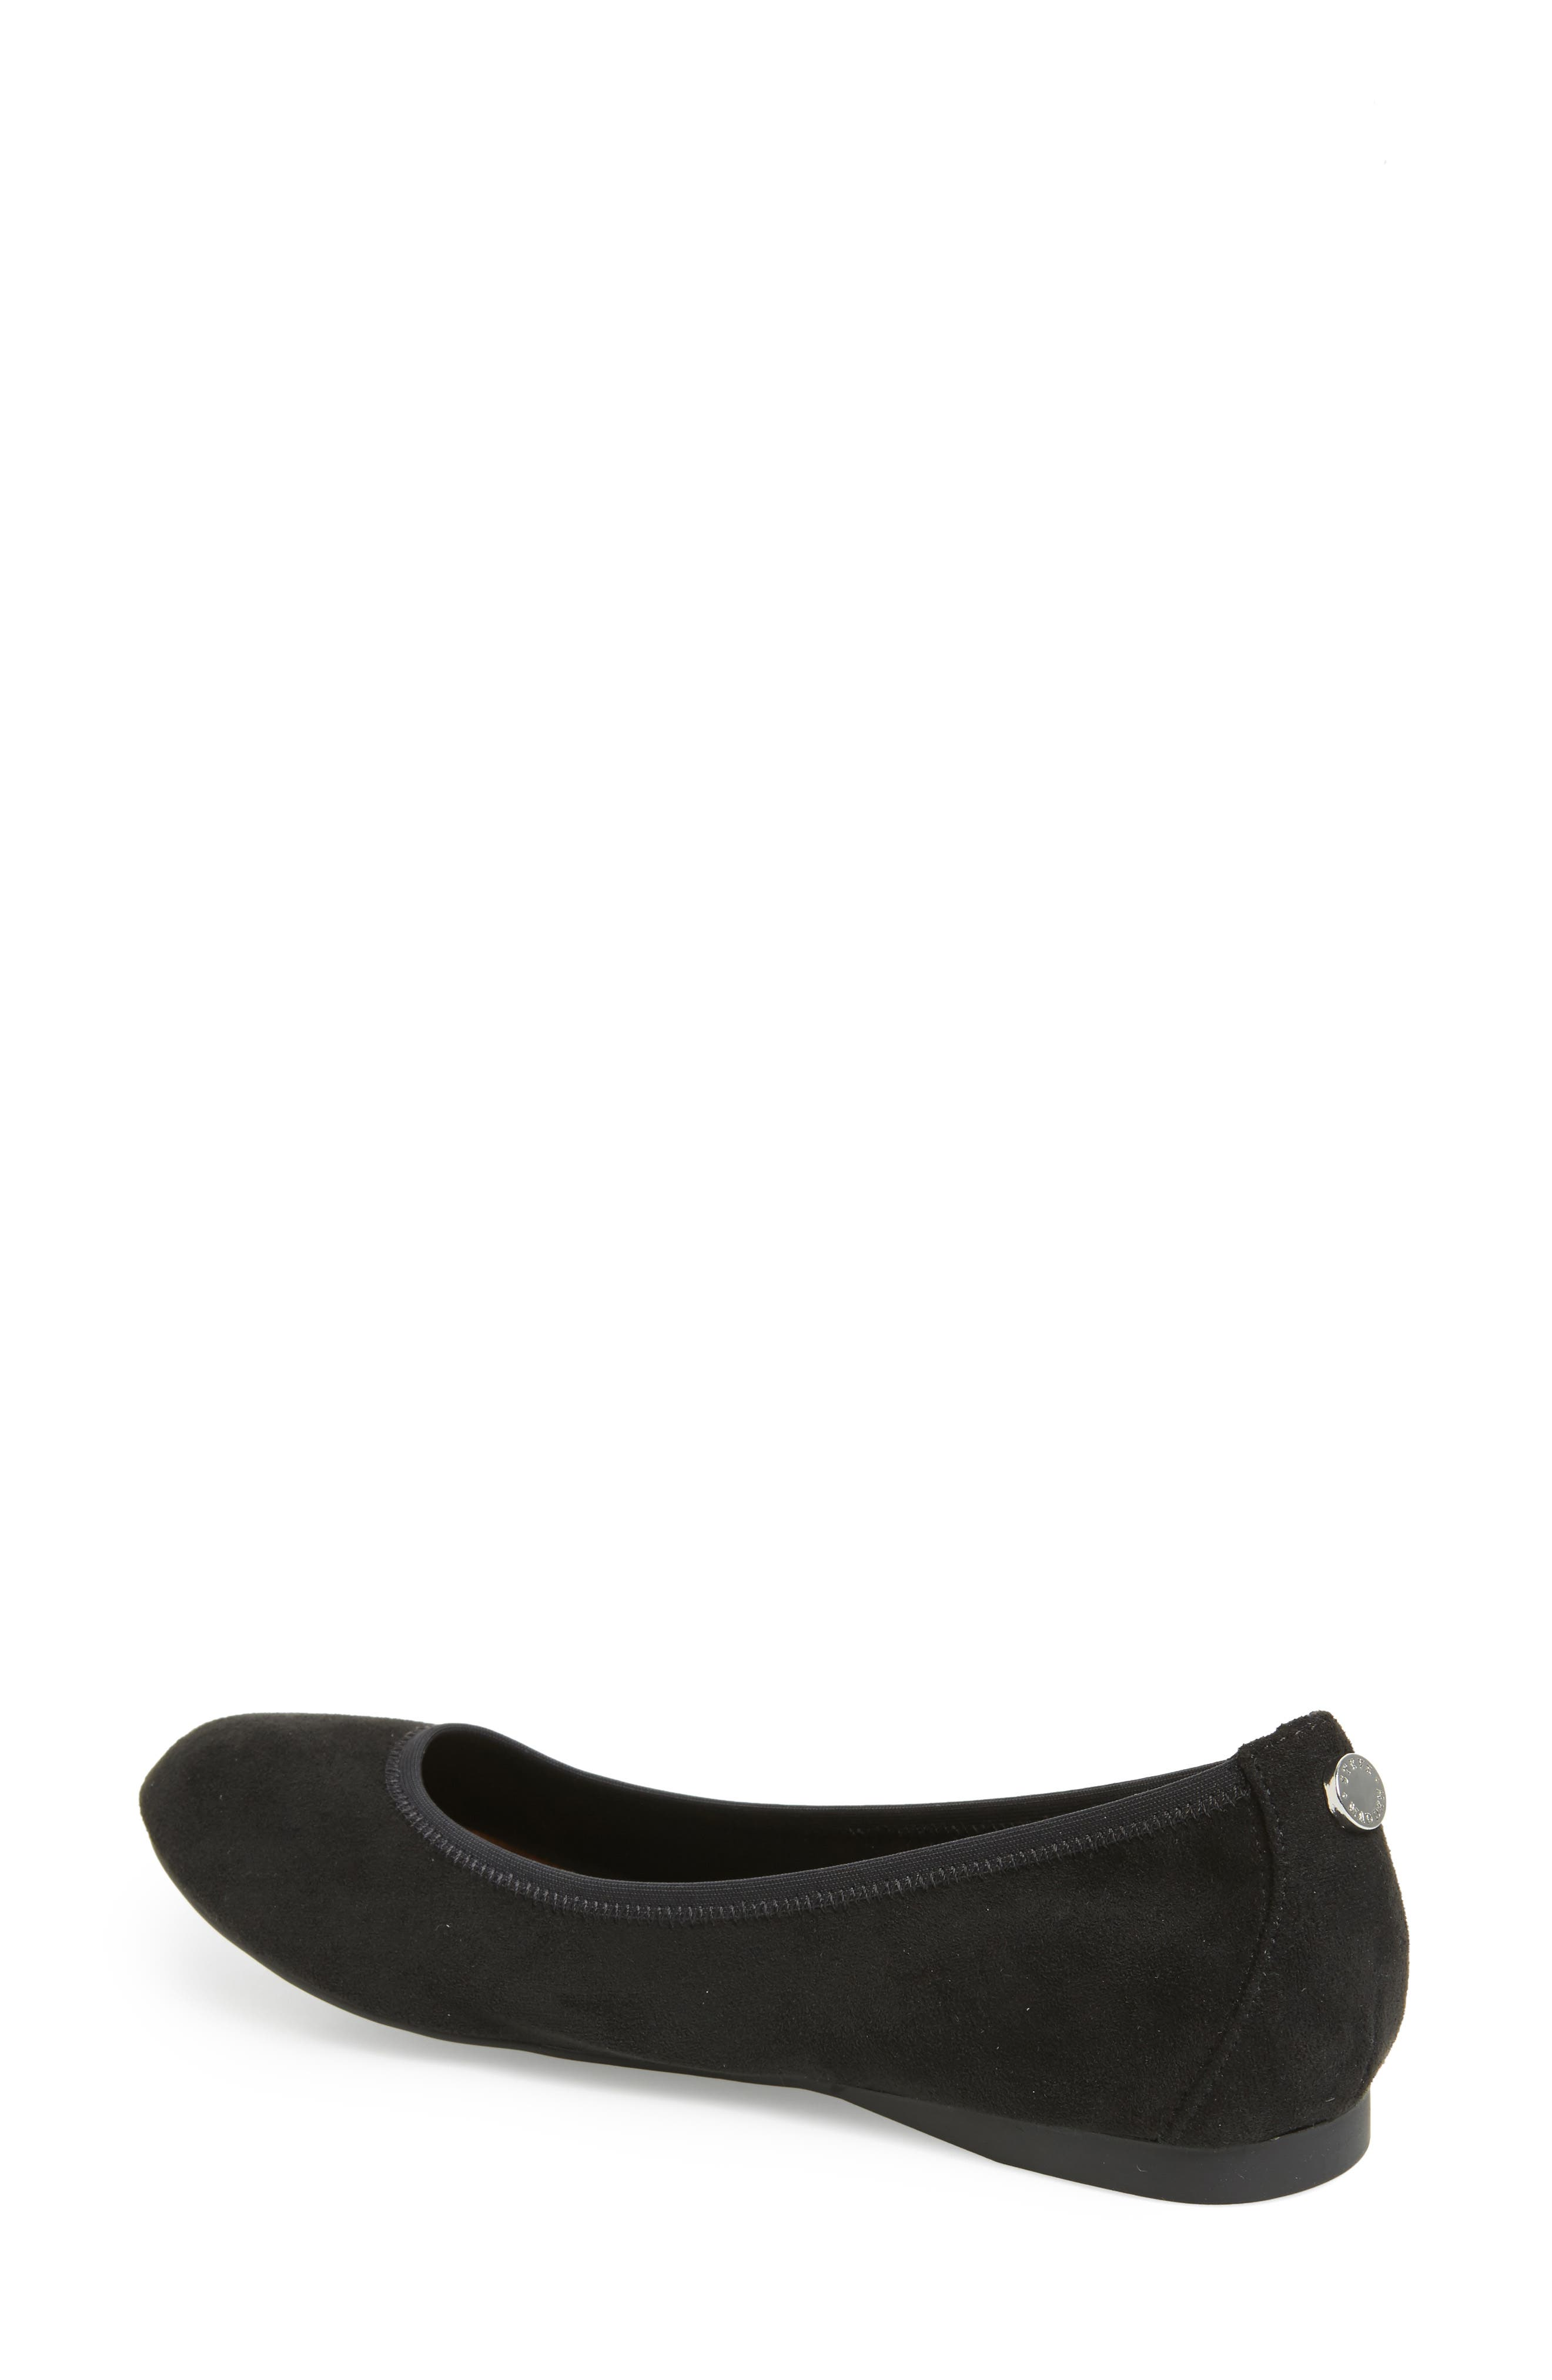 Bamba Ballet Flat,                             Alternate thumbnail 3, color,